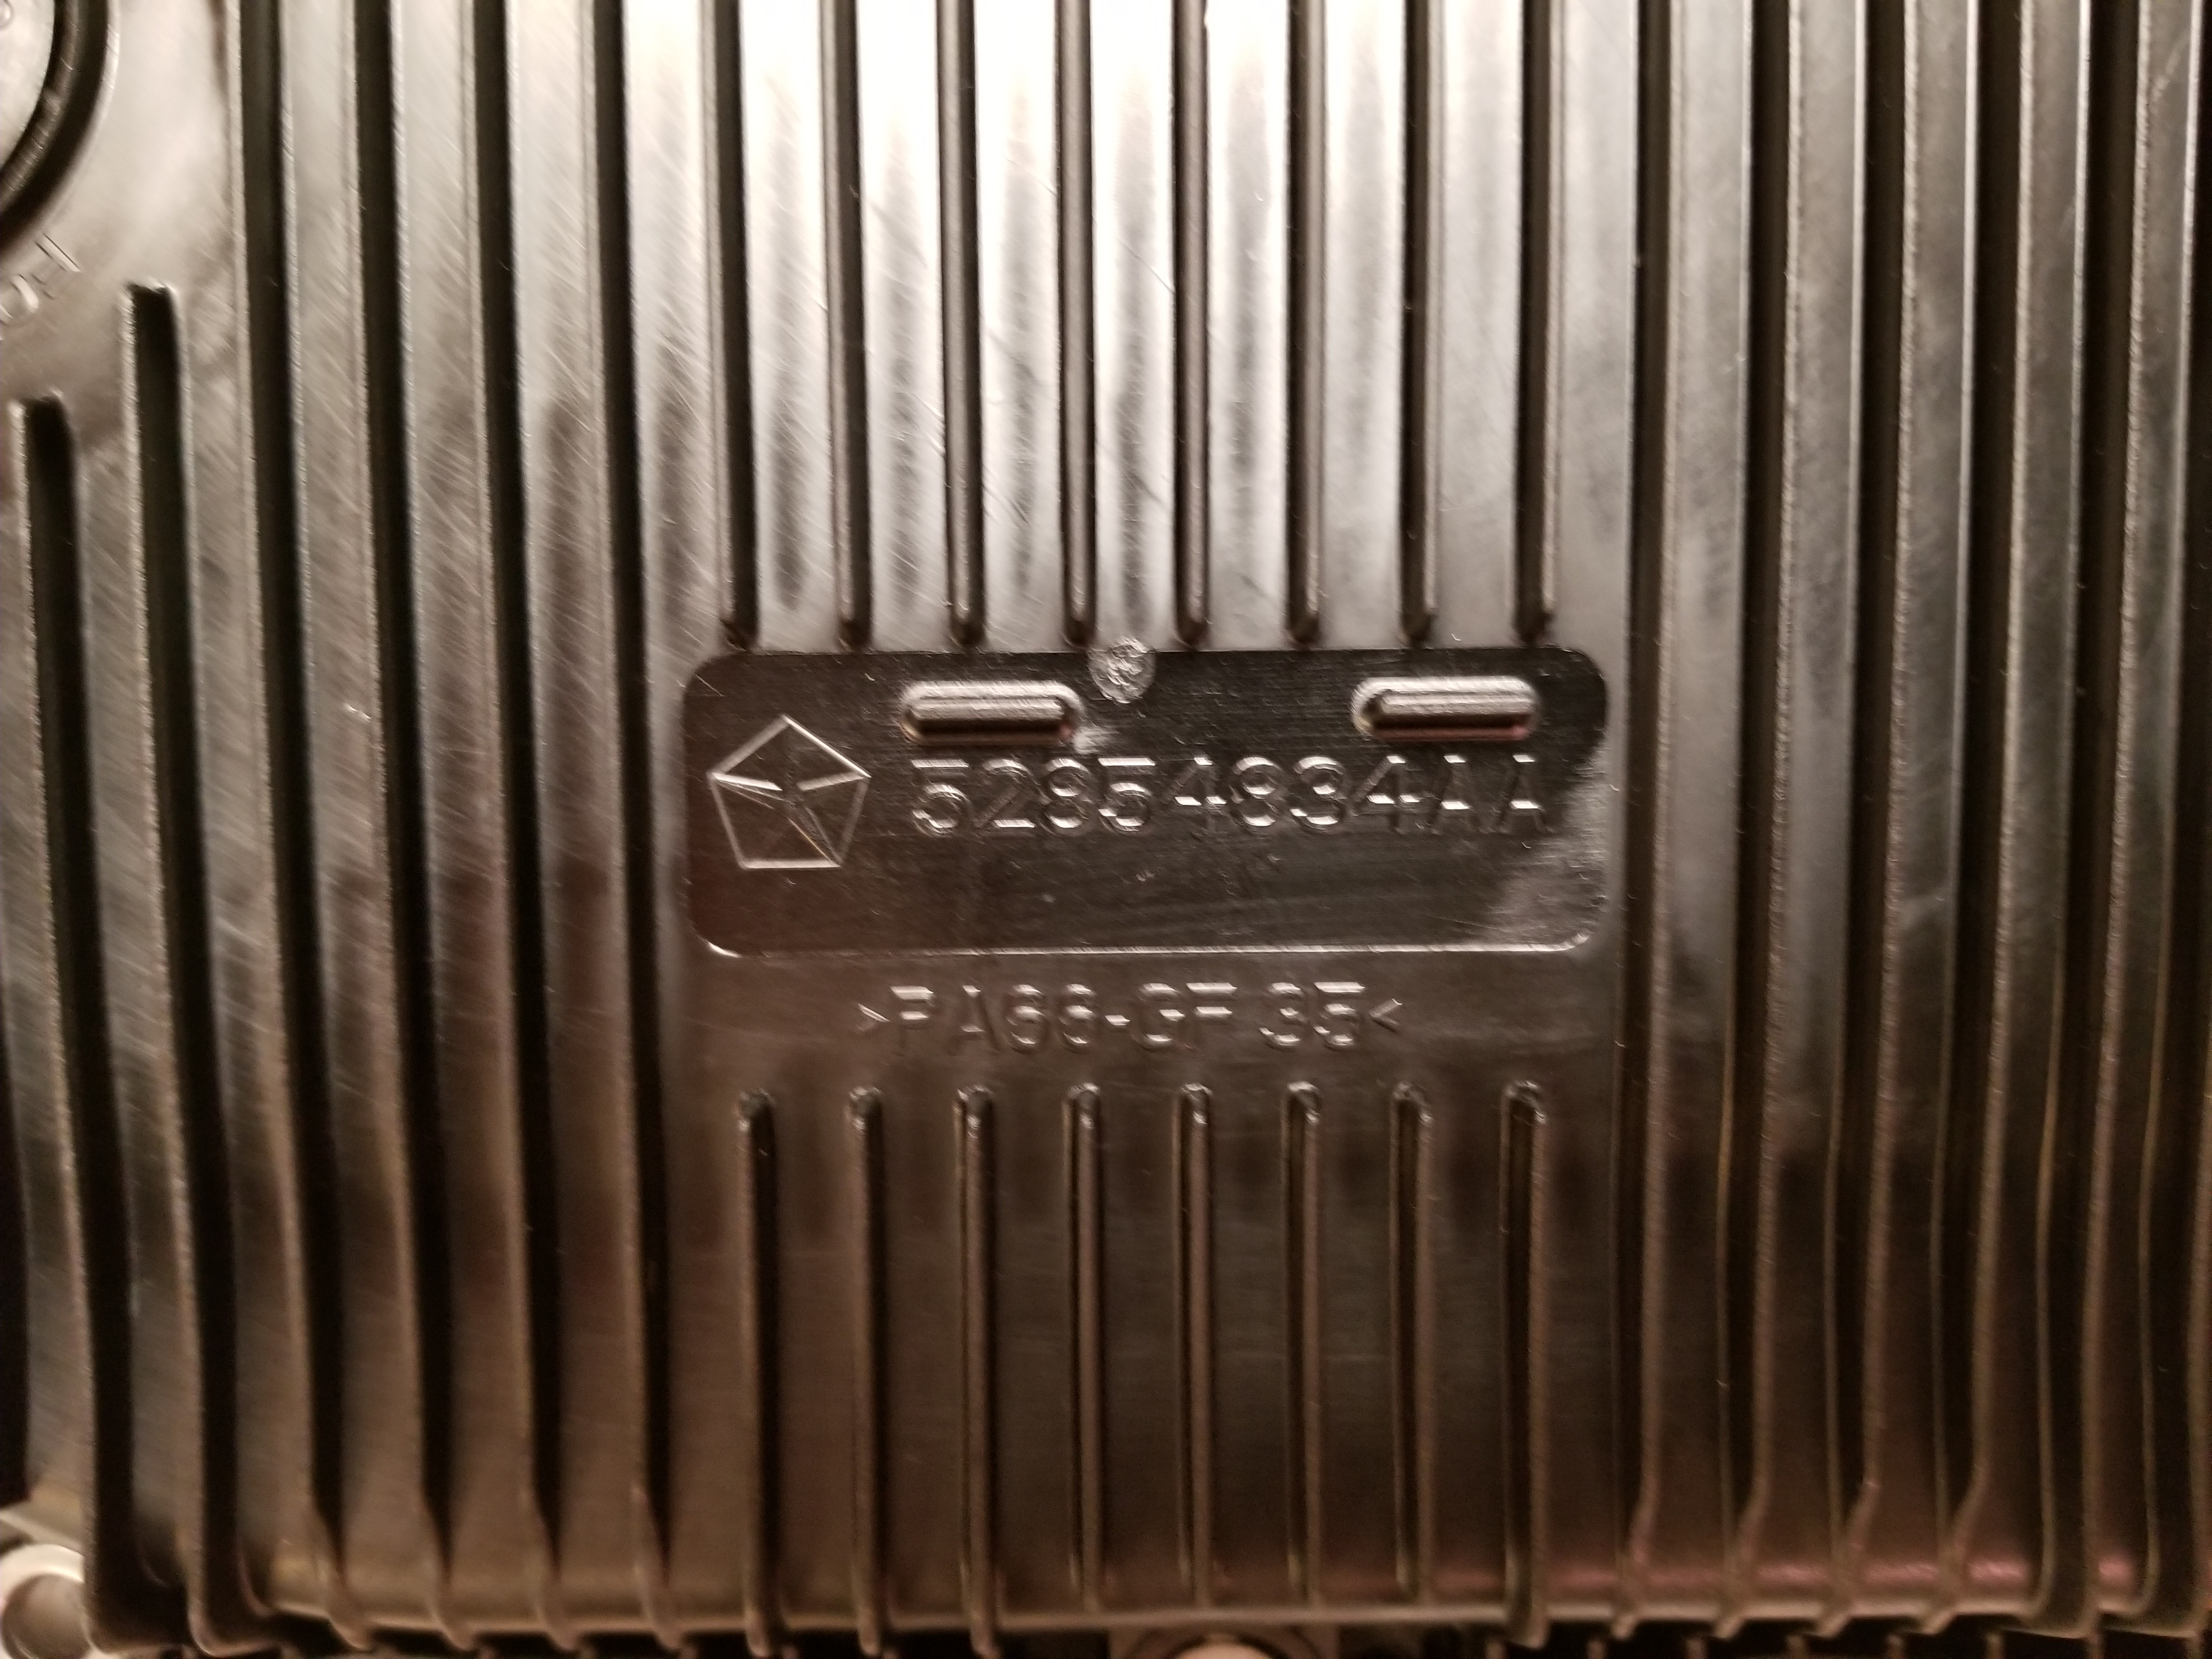 ZF 8HP plastic transmission pan differences-20180913_165348.jpg